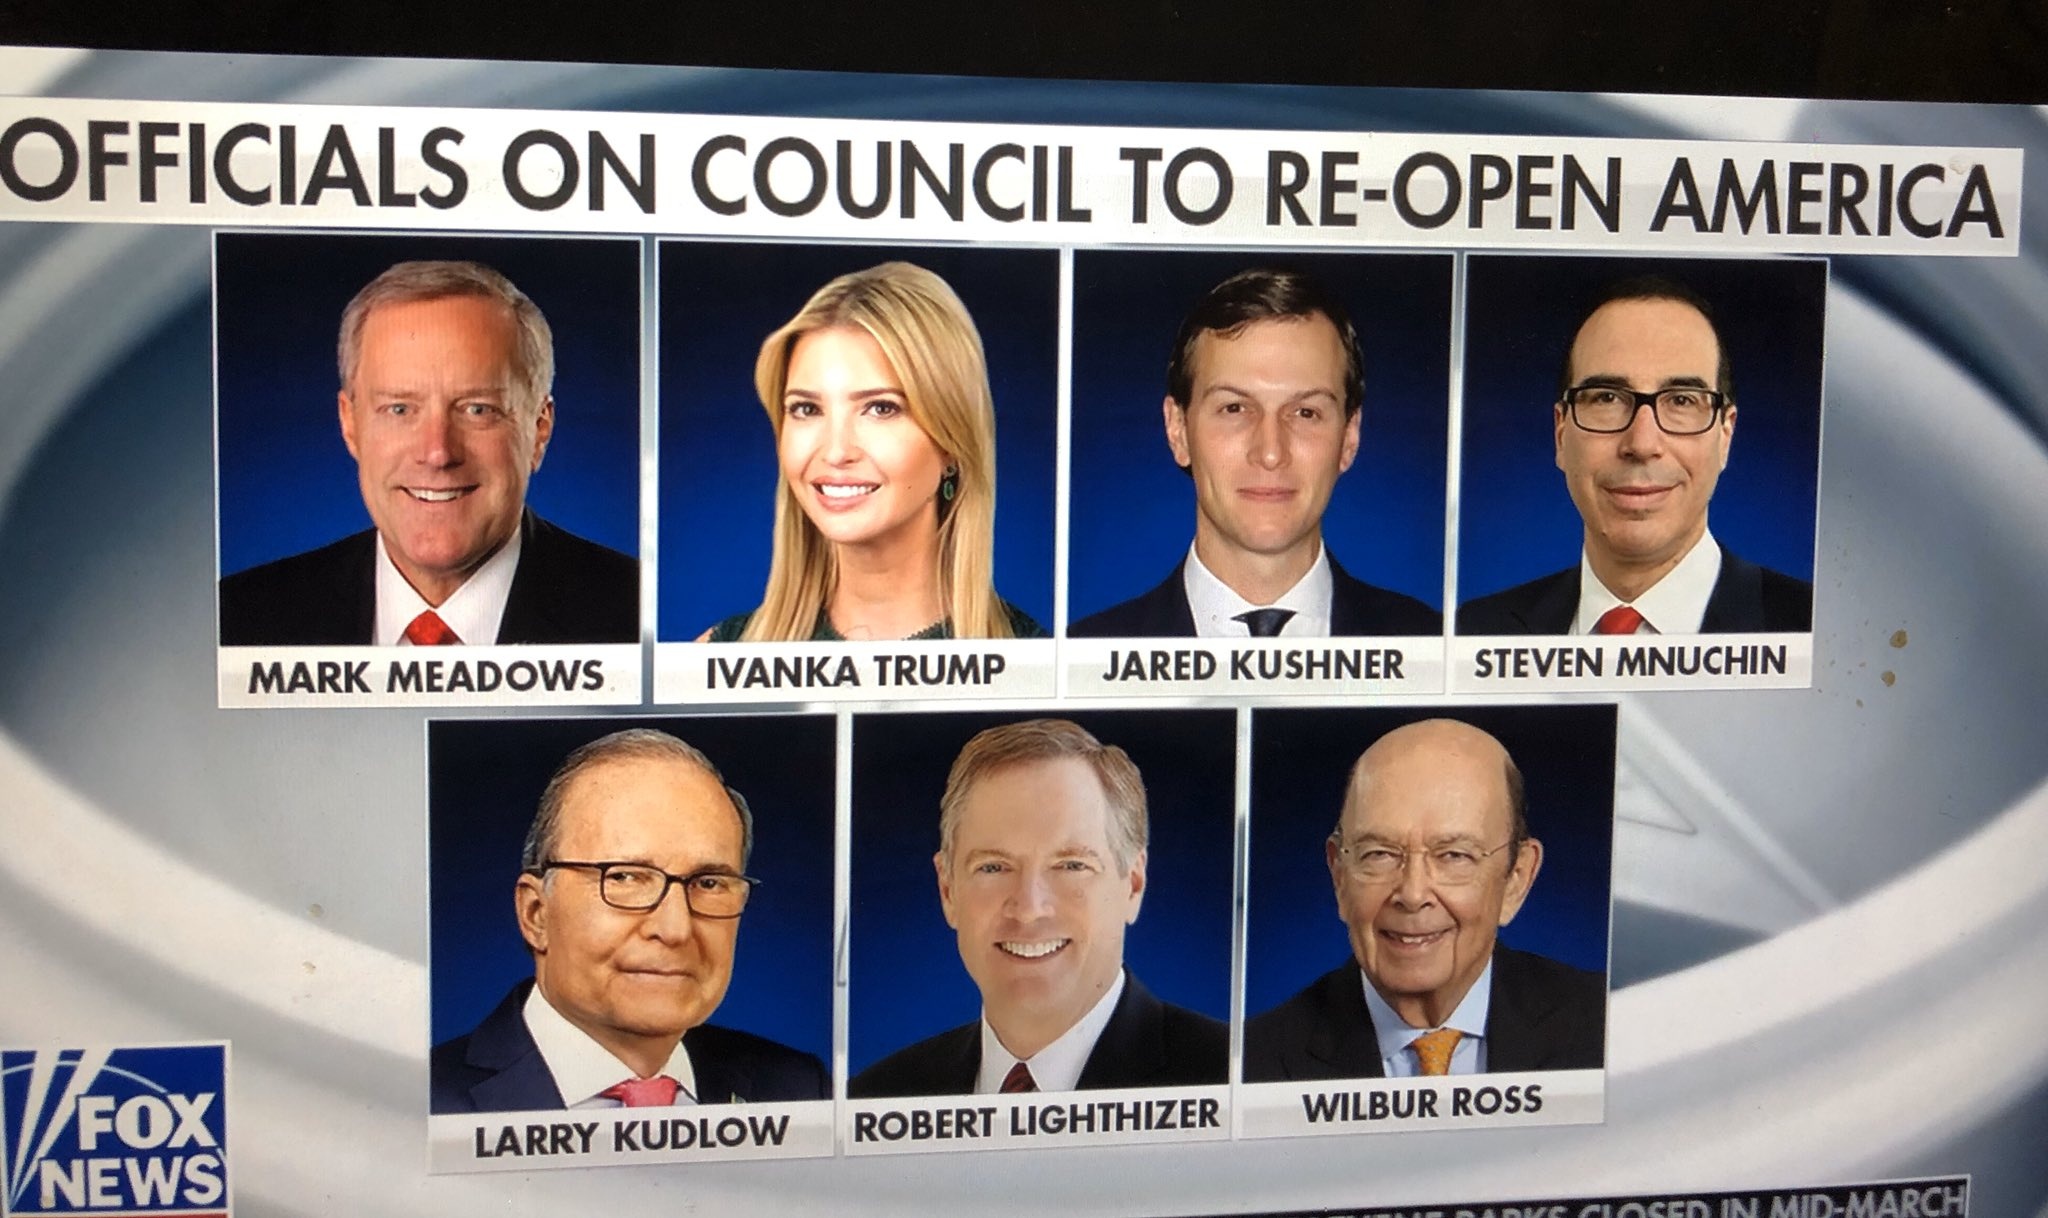 , The Council to Reopen America: 6 rich white men and the president's daughter, The Politicus